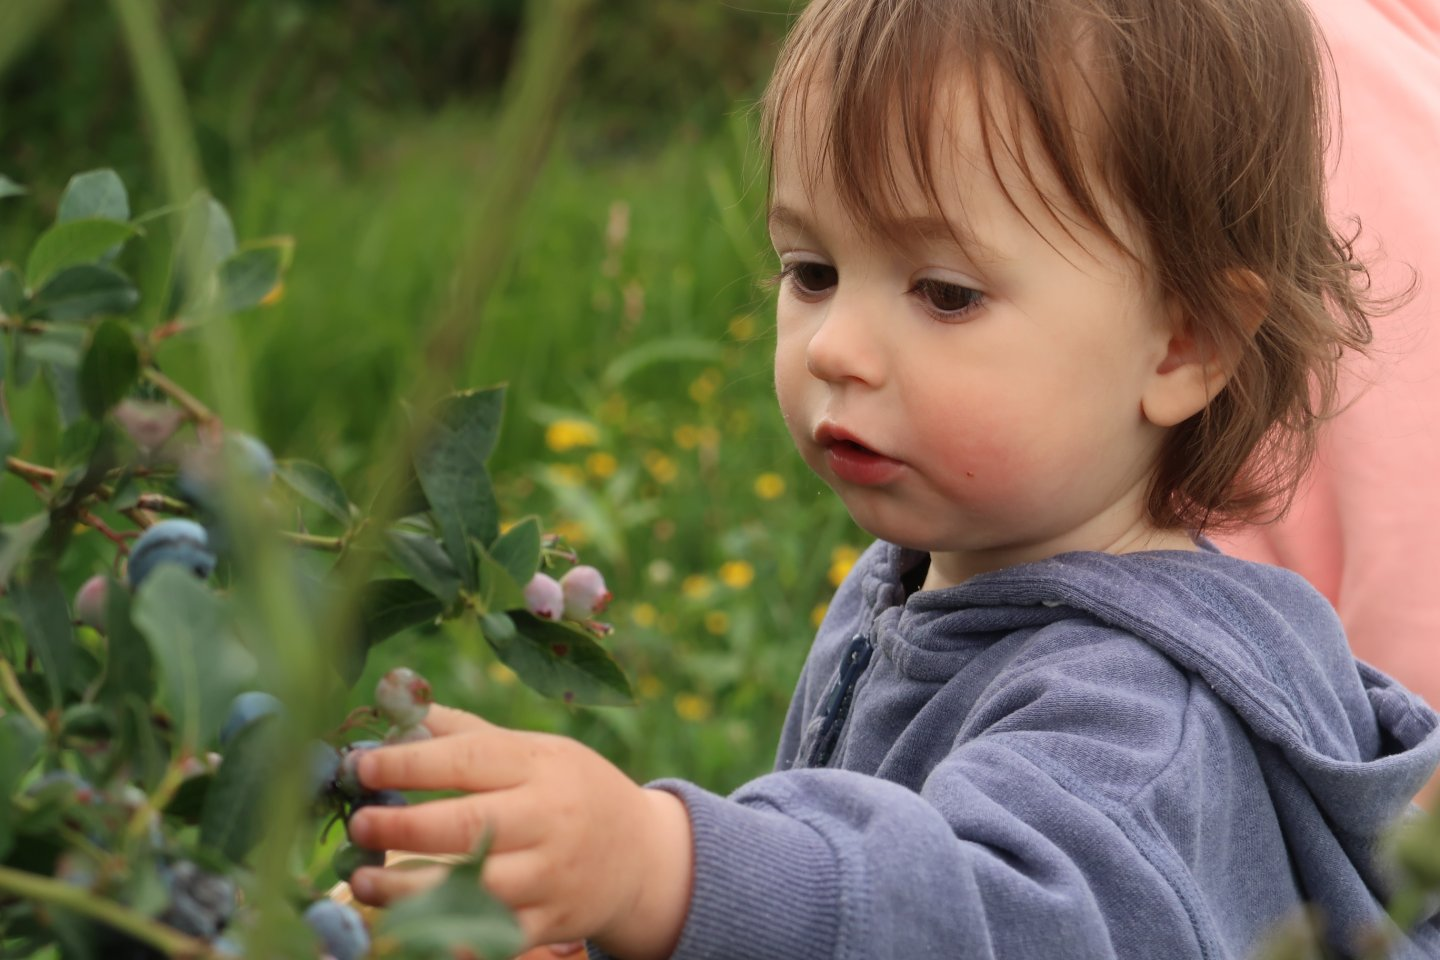 B picking blueberries from the bush at Fairgreen Farms, King's Lynn.